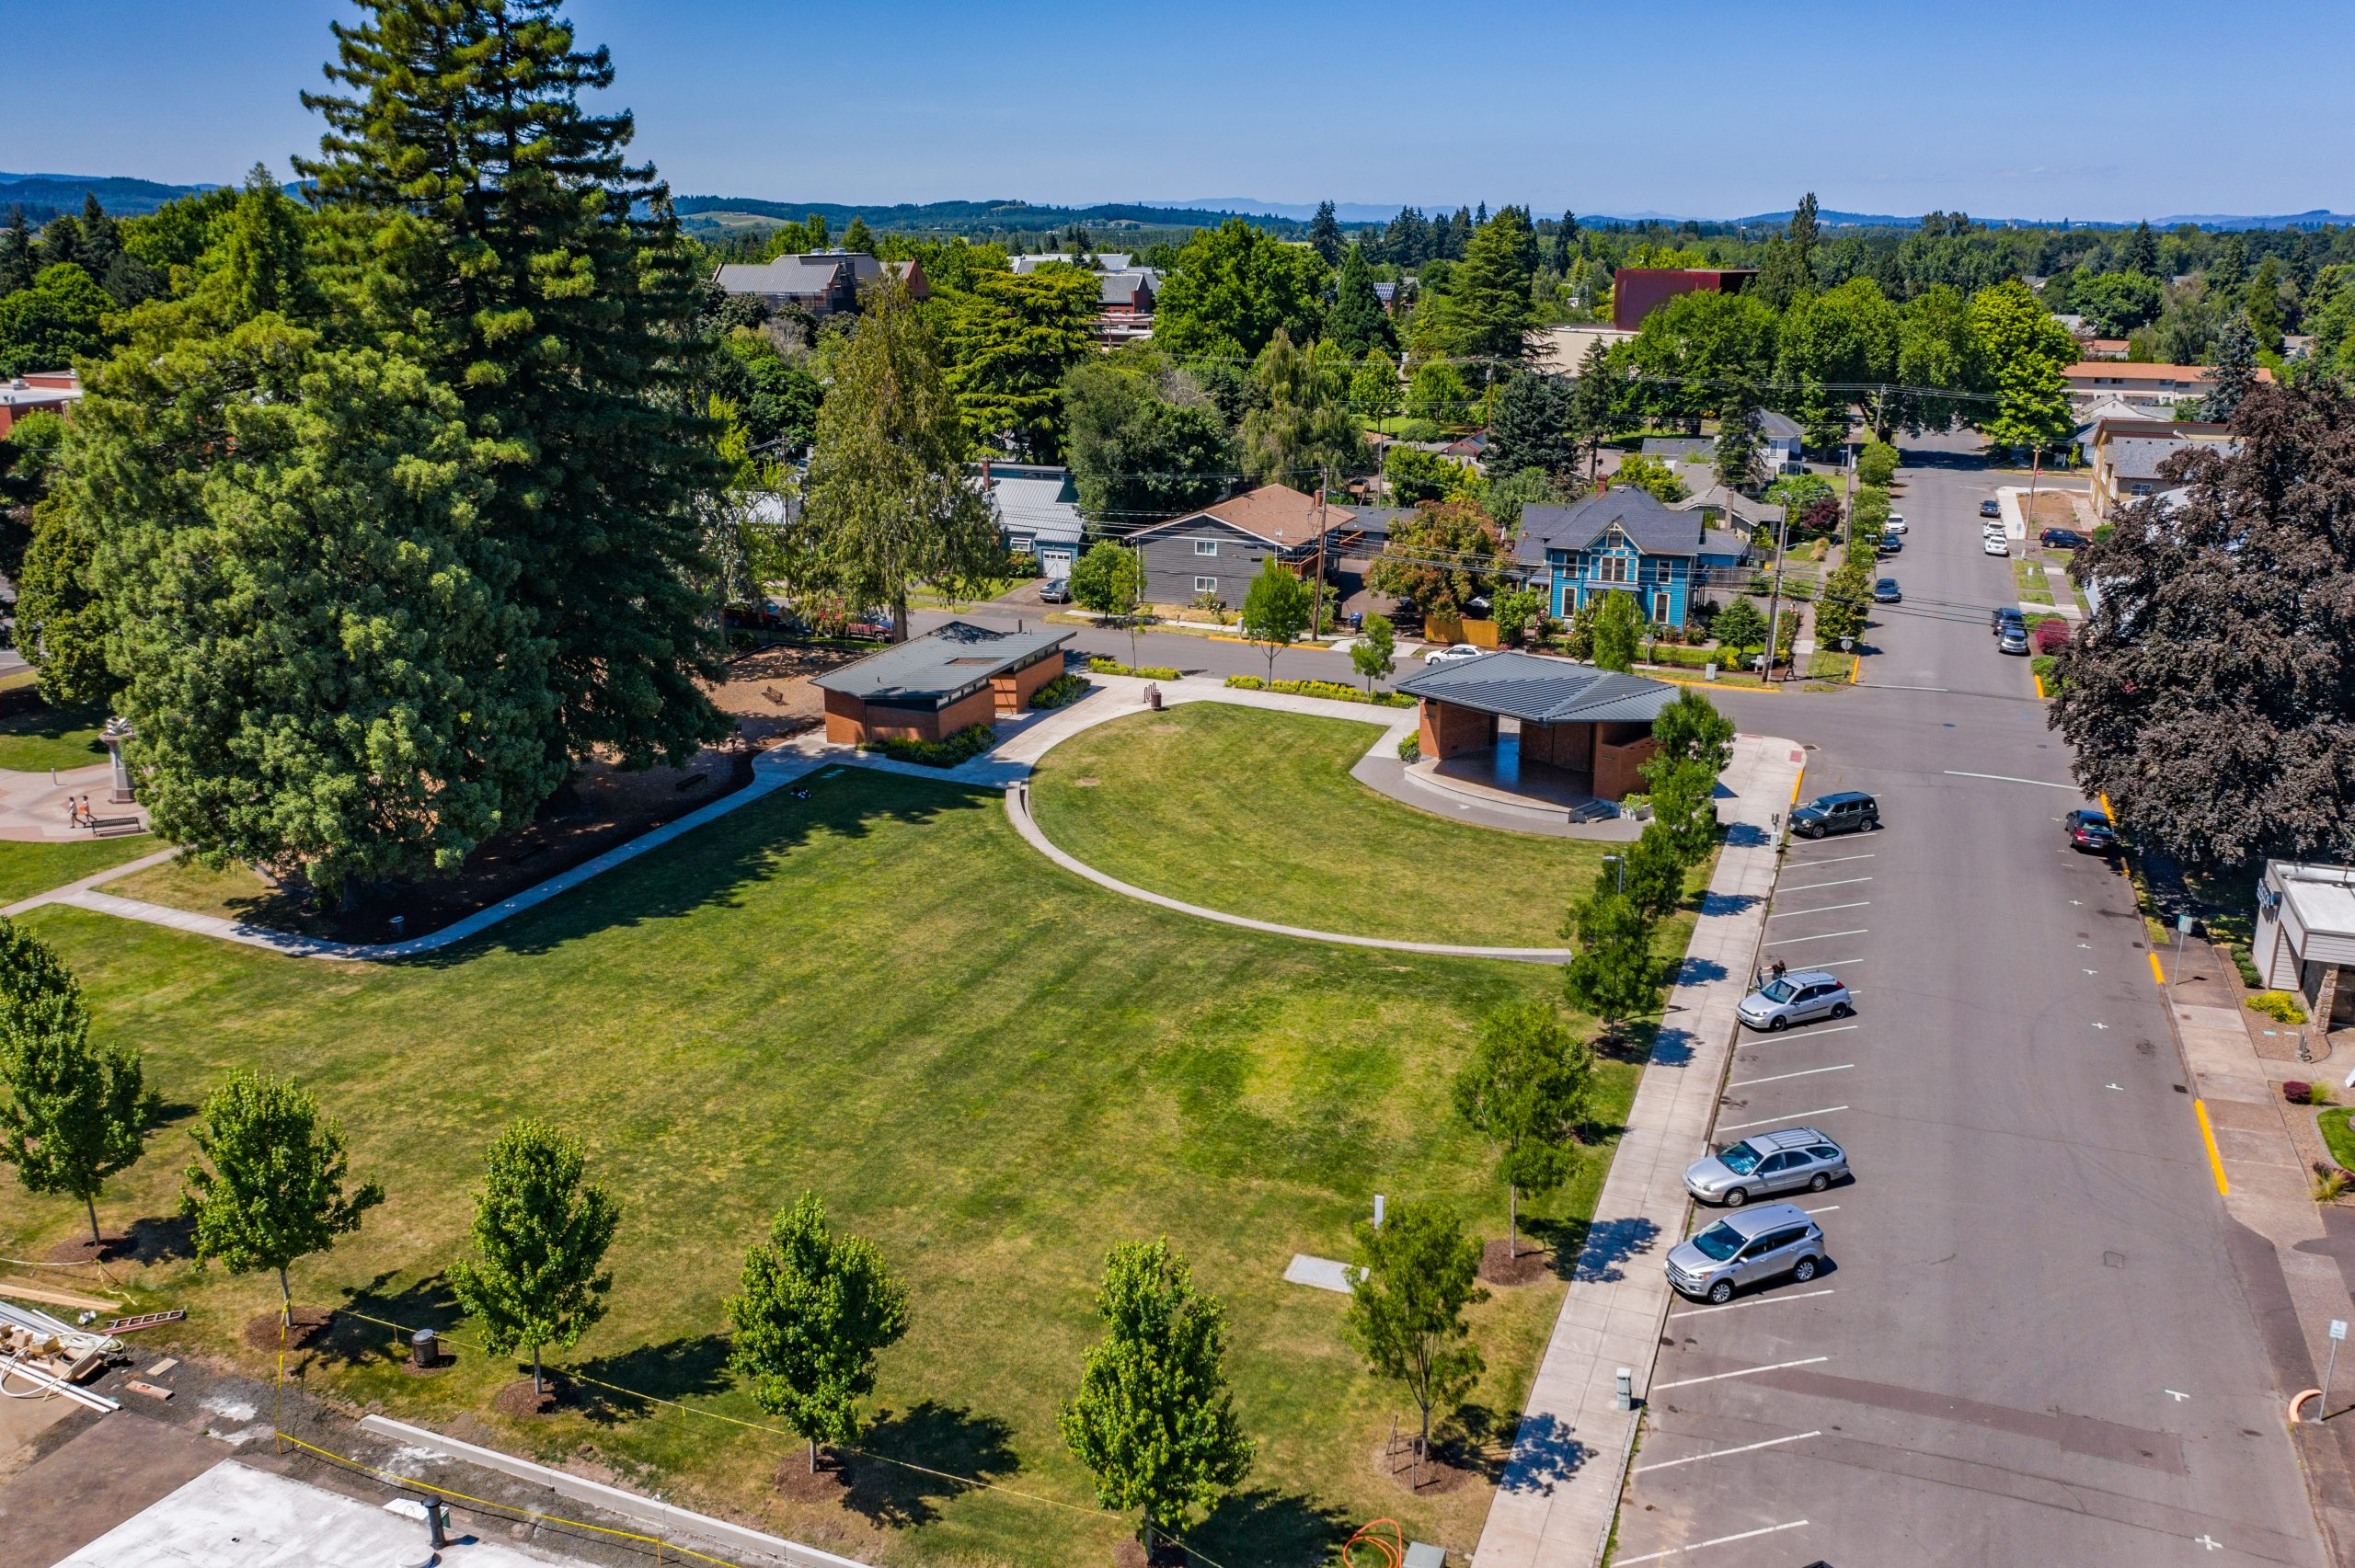 Arial View of Main Street Park in Monmouth